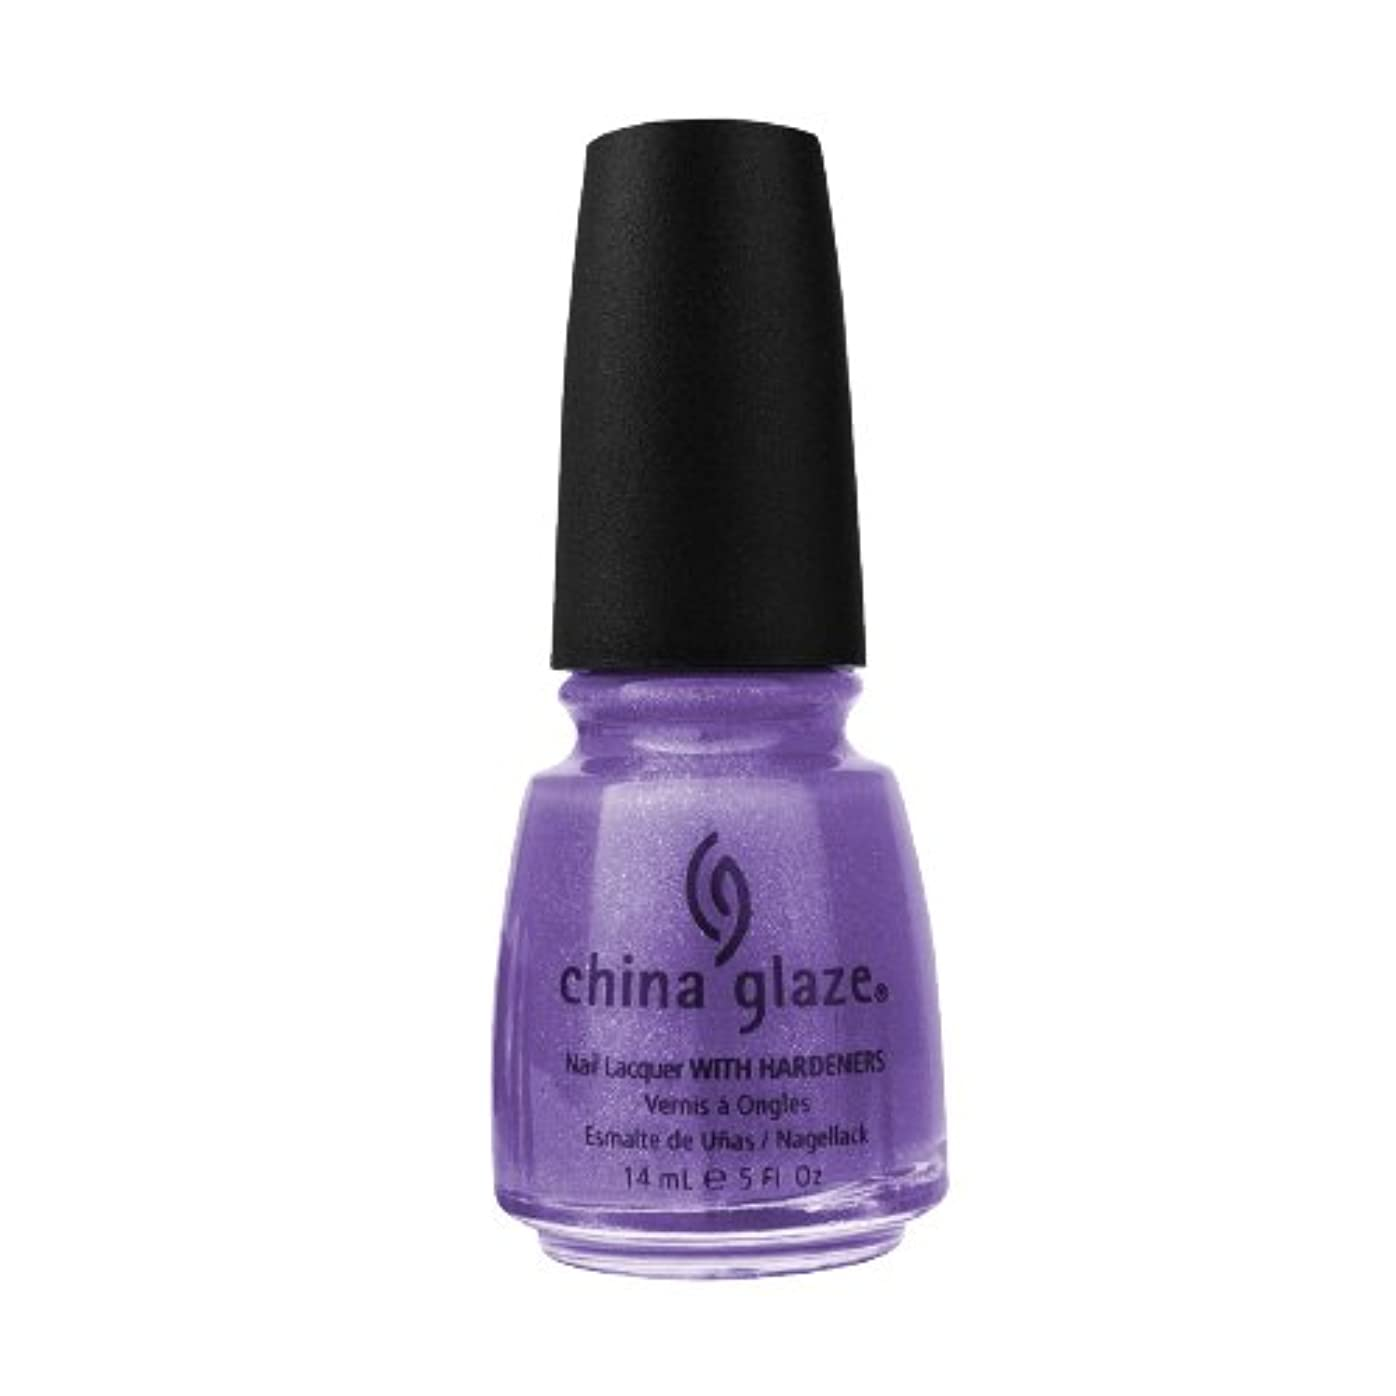 私たち自身オッズ心理的にCHINA GLAZE Nail Lacquer with Nail Hardner 2 - Grape Juice (並行輸入品)